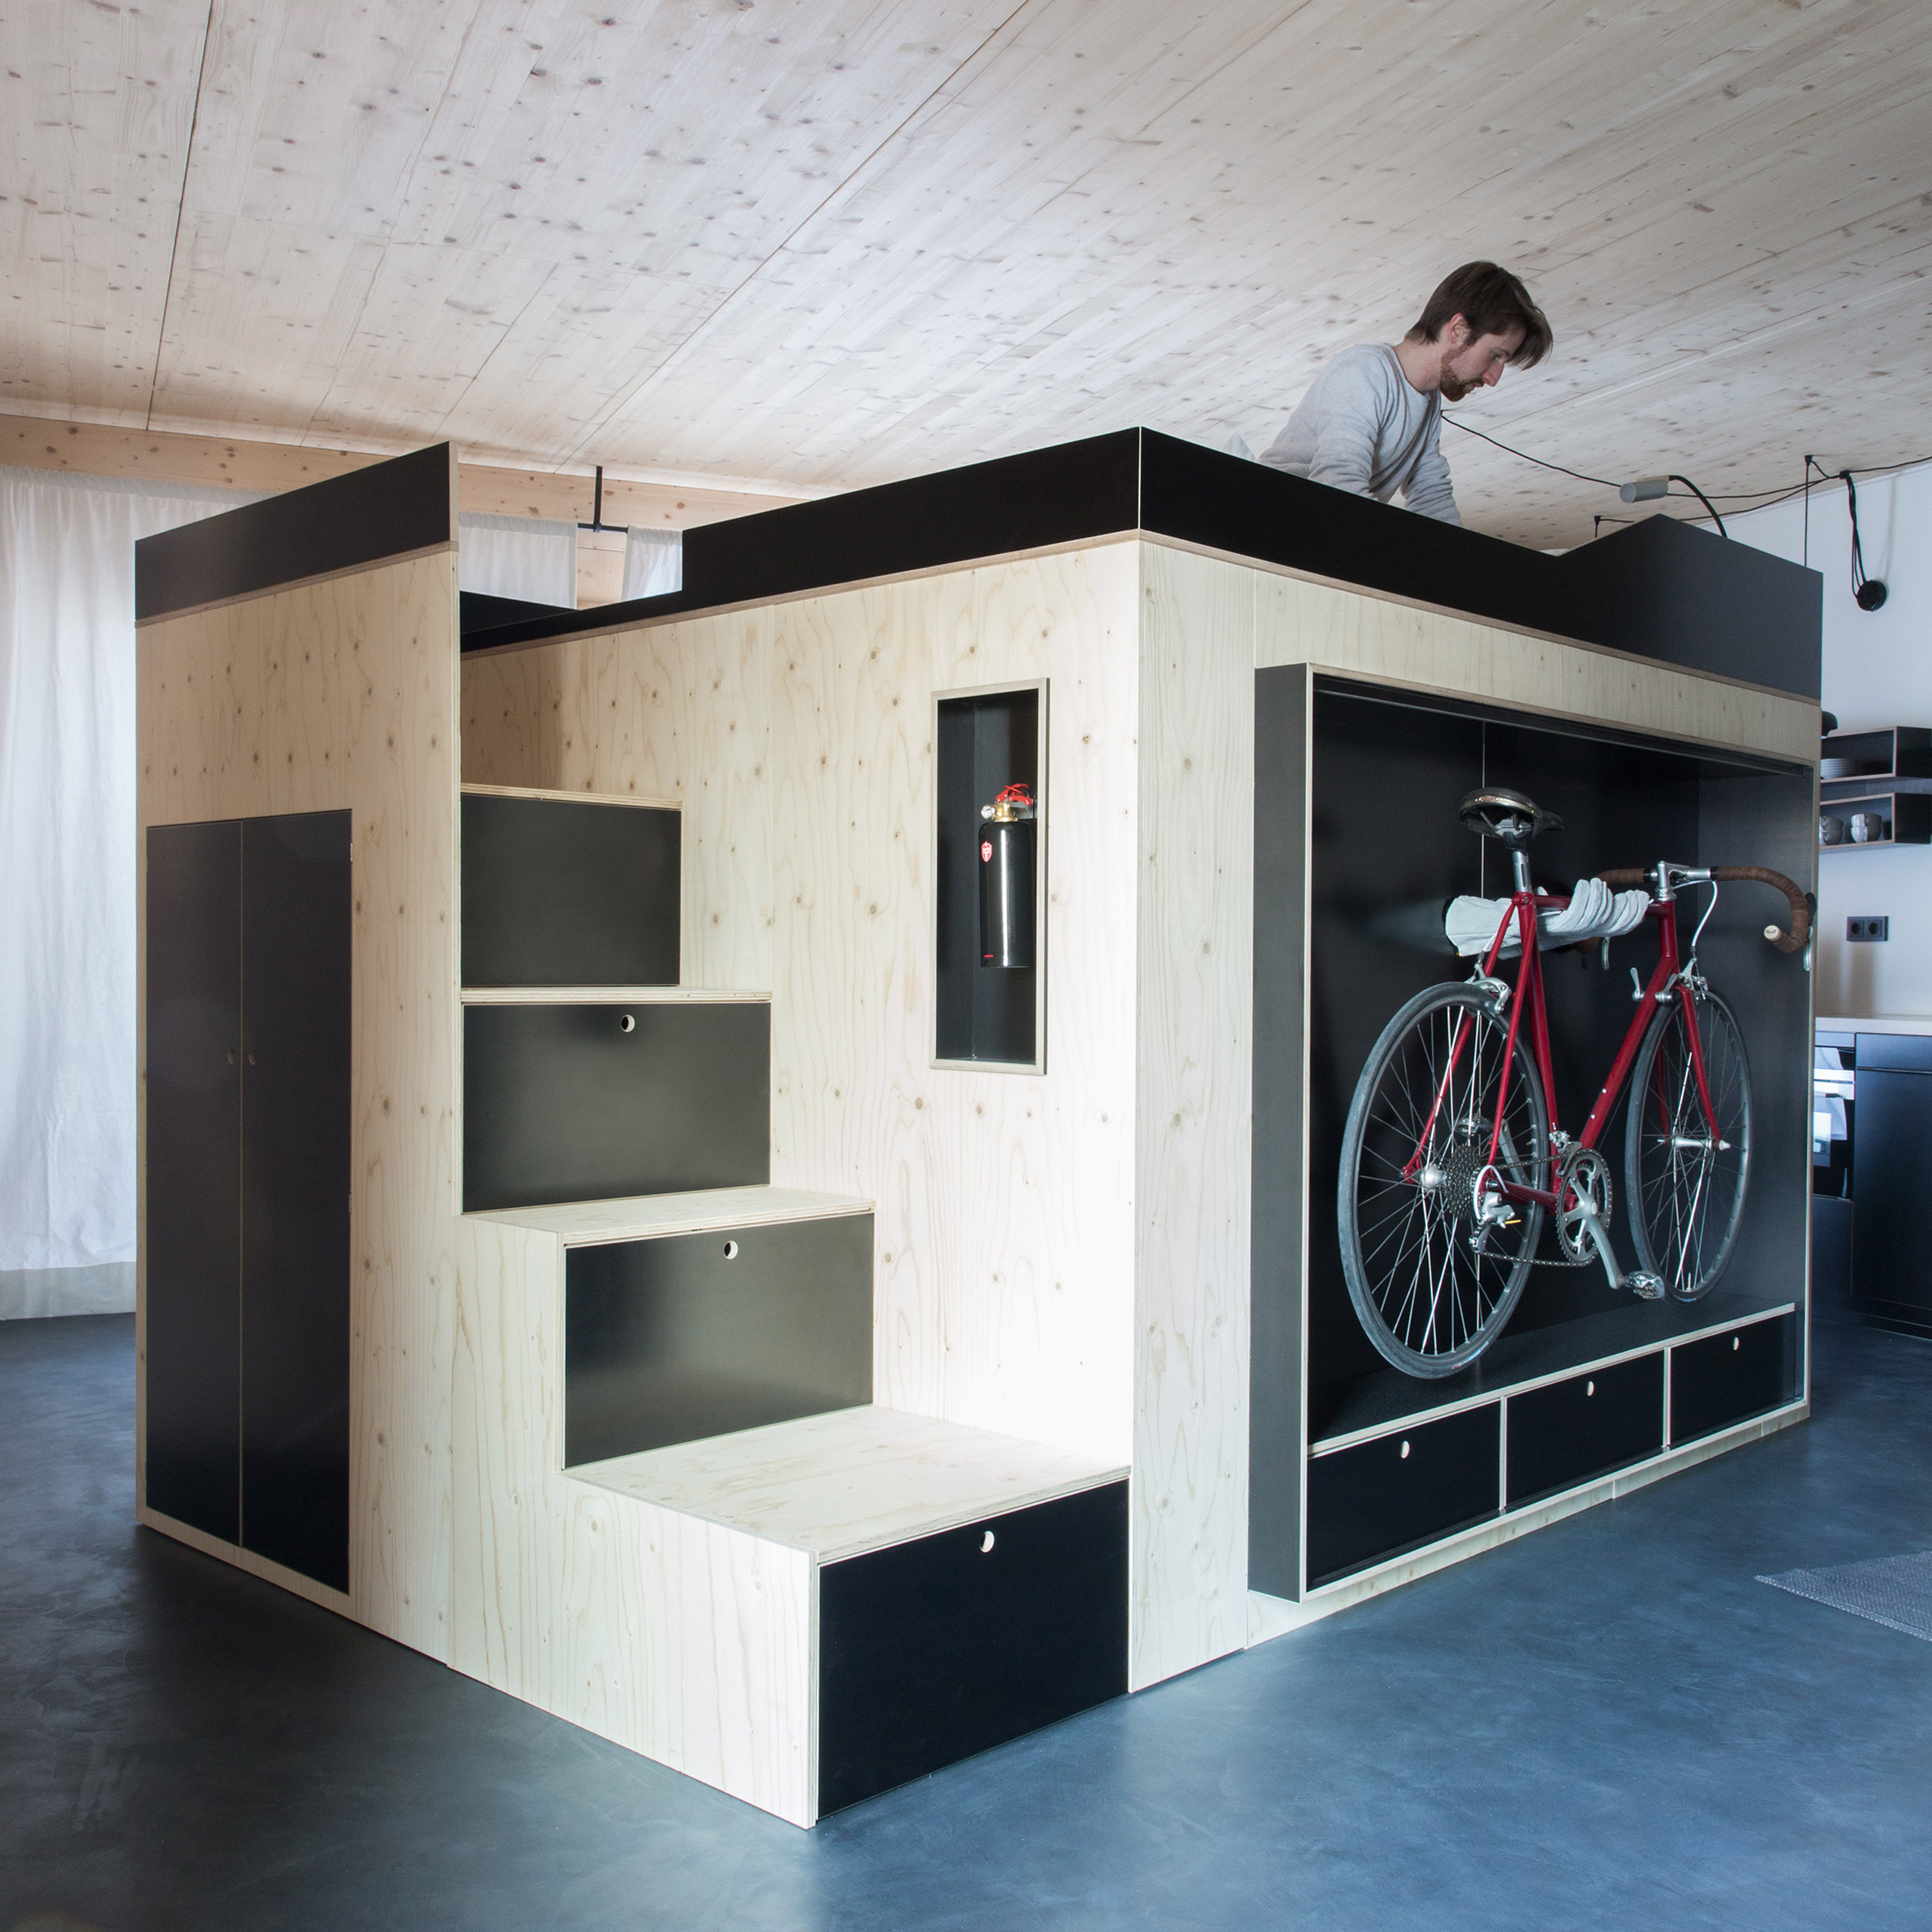 Nils Holger Moormann creates Kammerspiel living cube for micro apartments. Nils Holger Moormann creates Kammerspiel living cube for micro